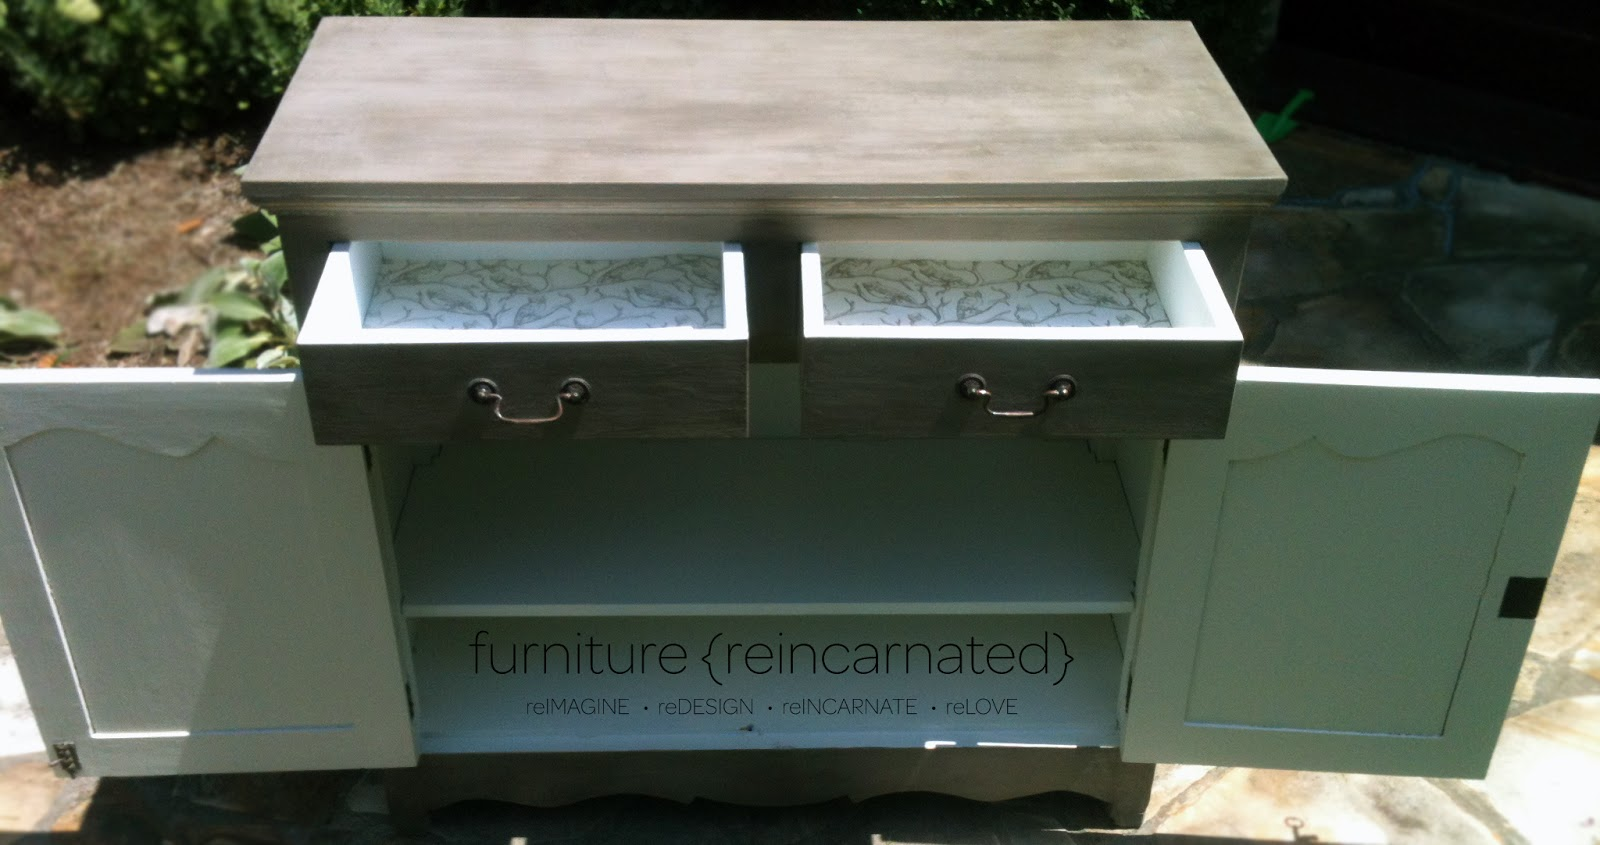 ballard designs console table from green ish to gray ish paint after